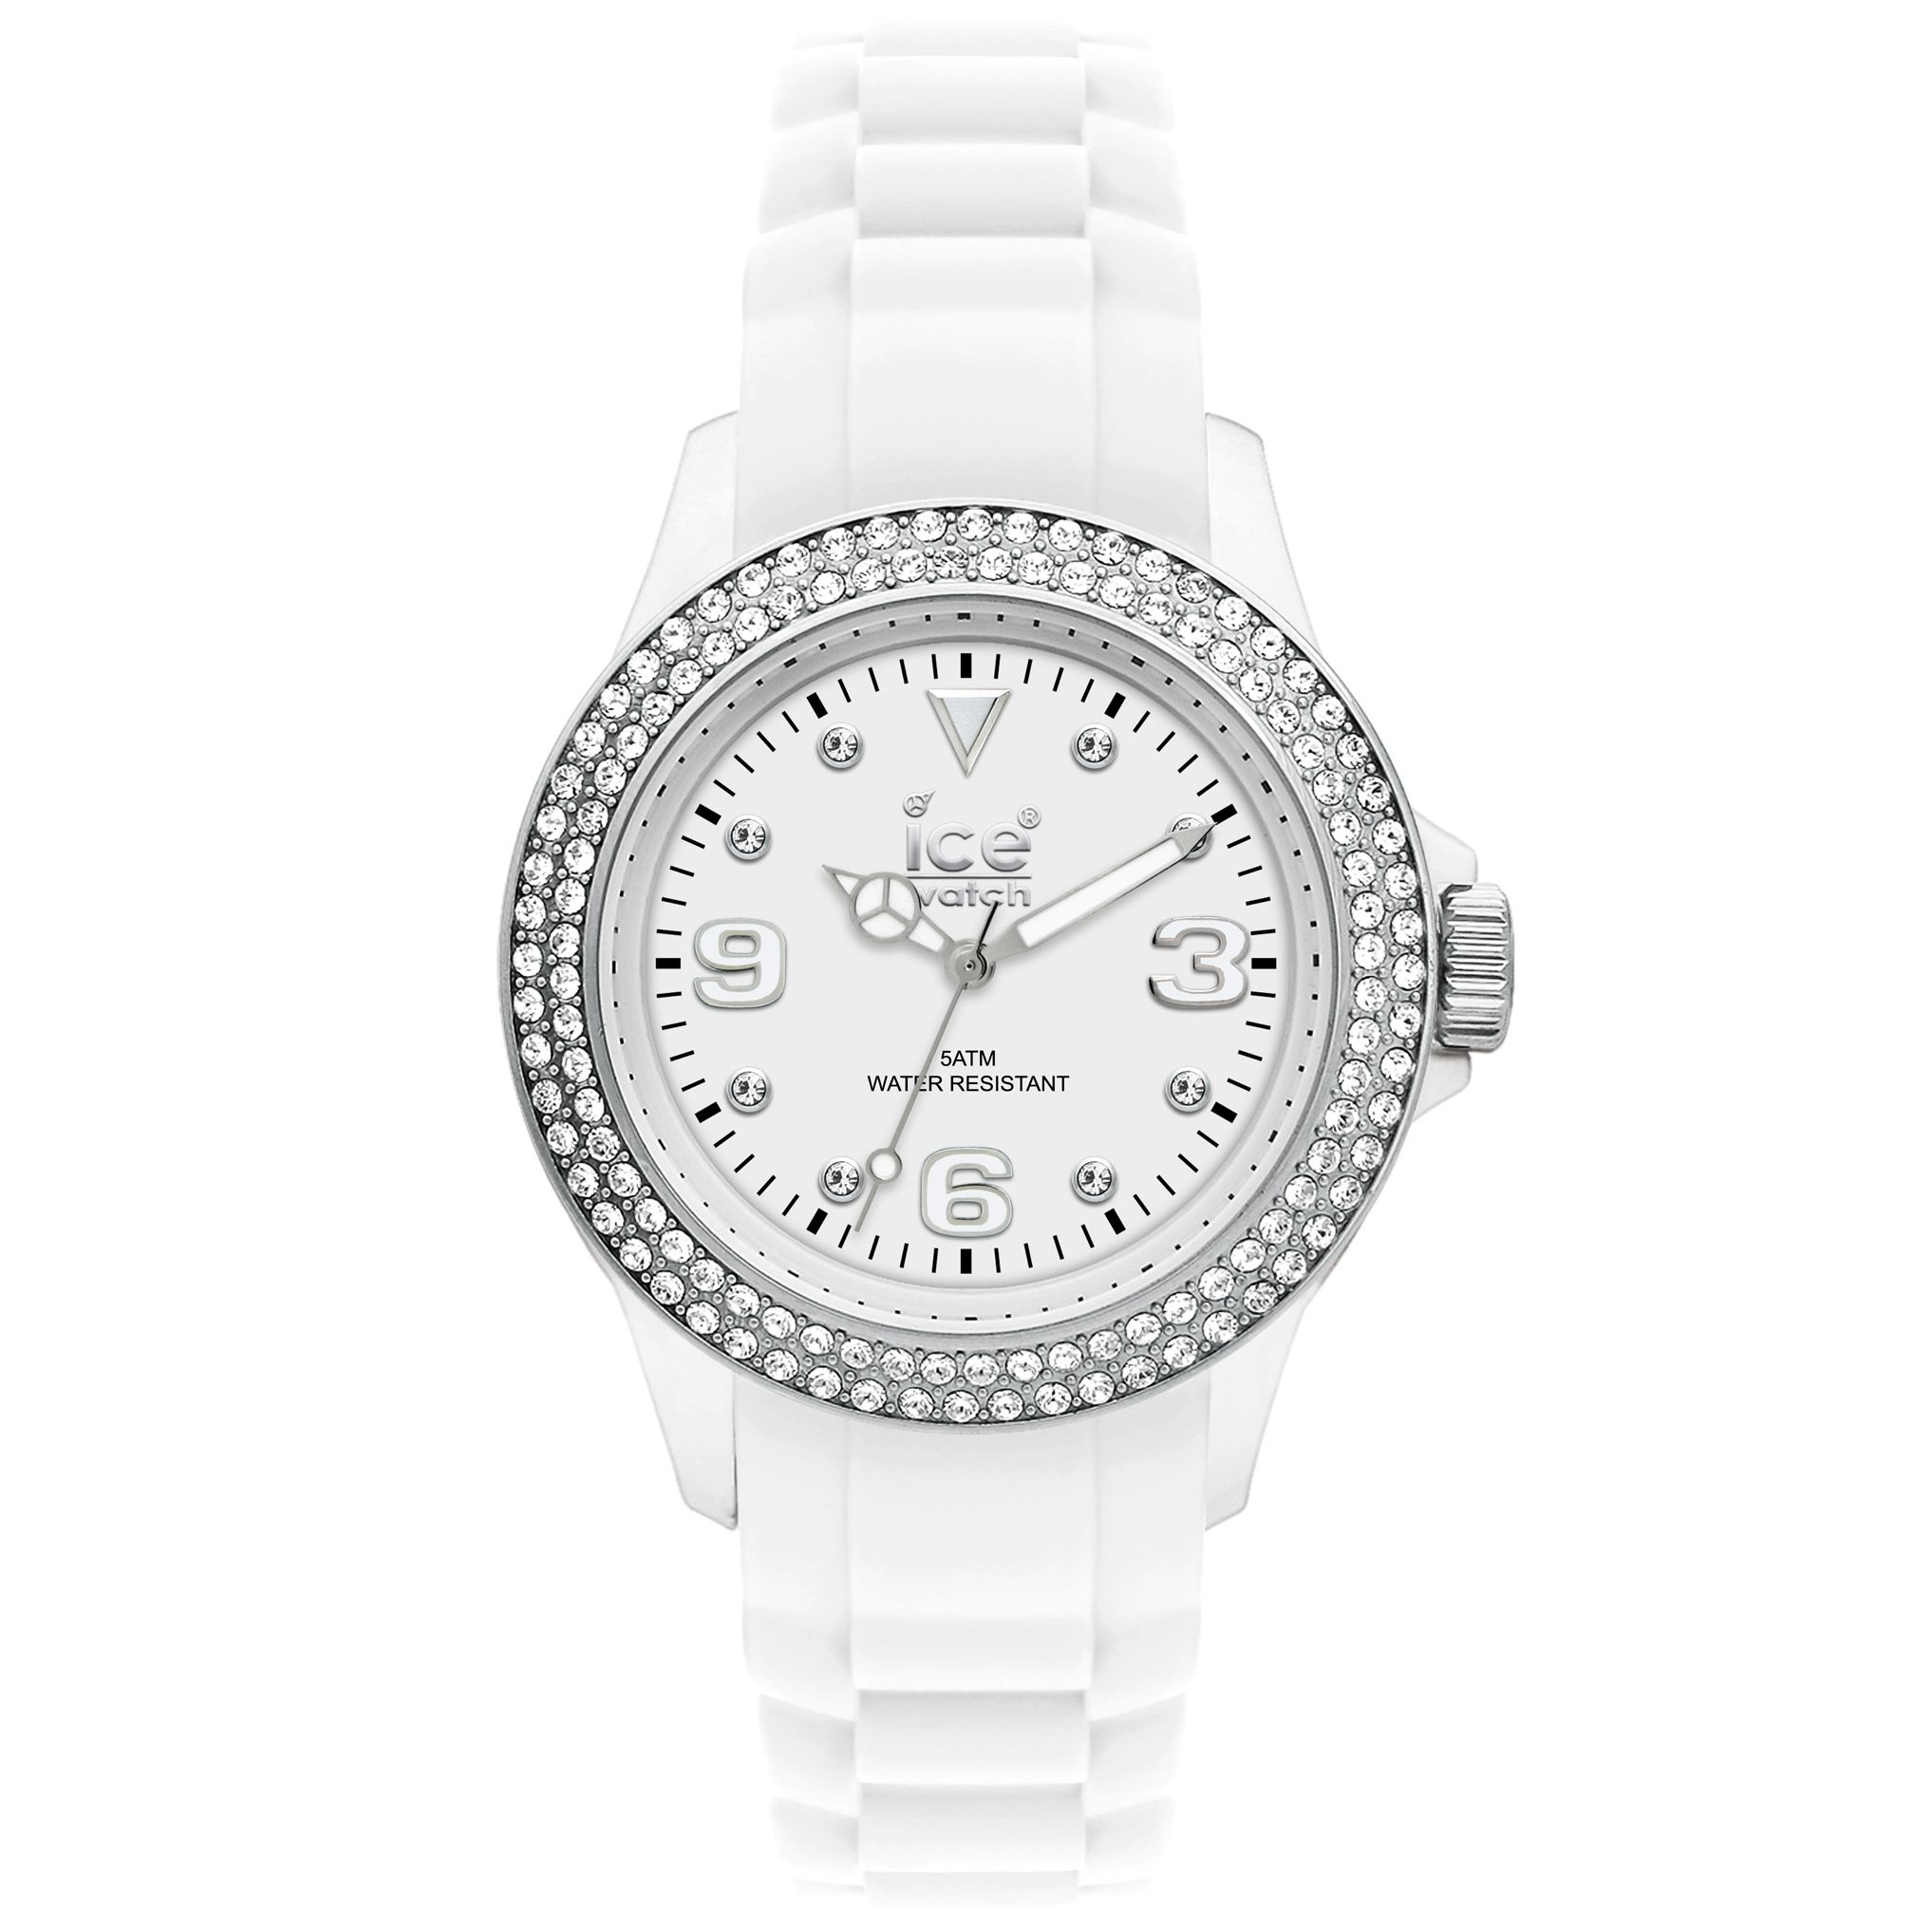 Ice-Watch ST-BS-SS LDS Unisex Stone Sili Collection White Strap Watch